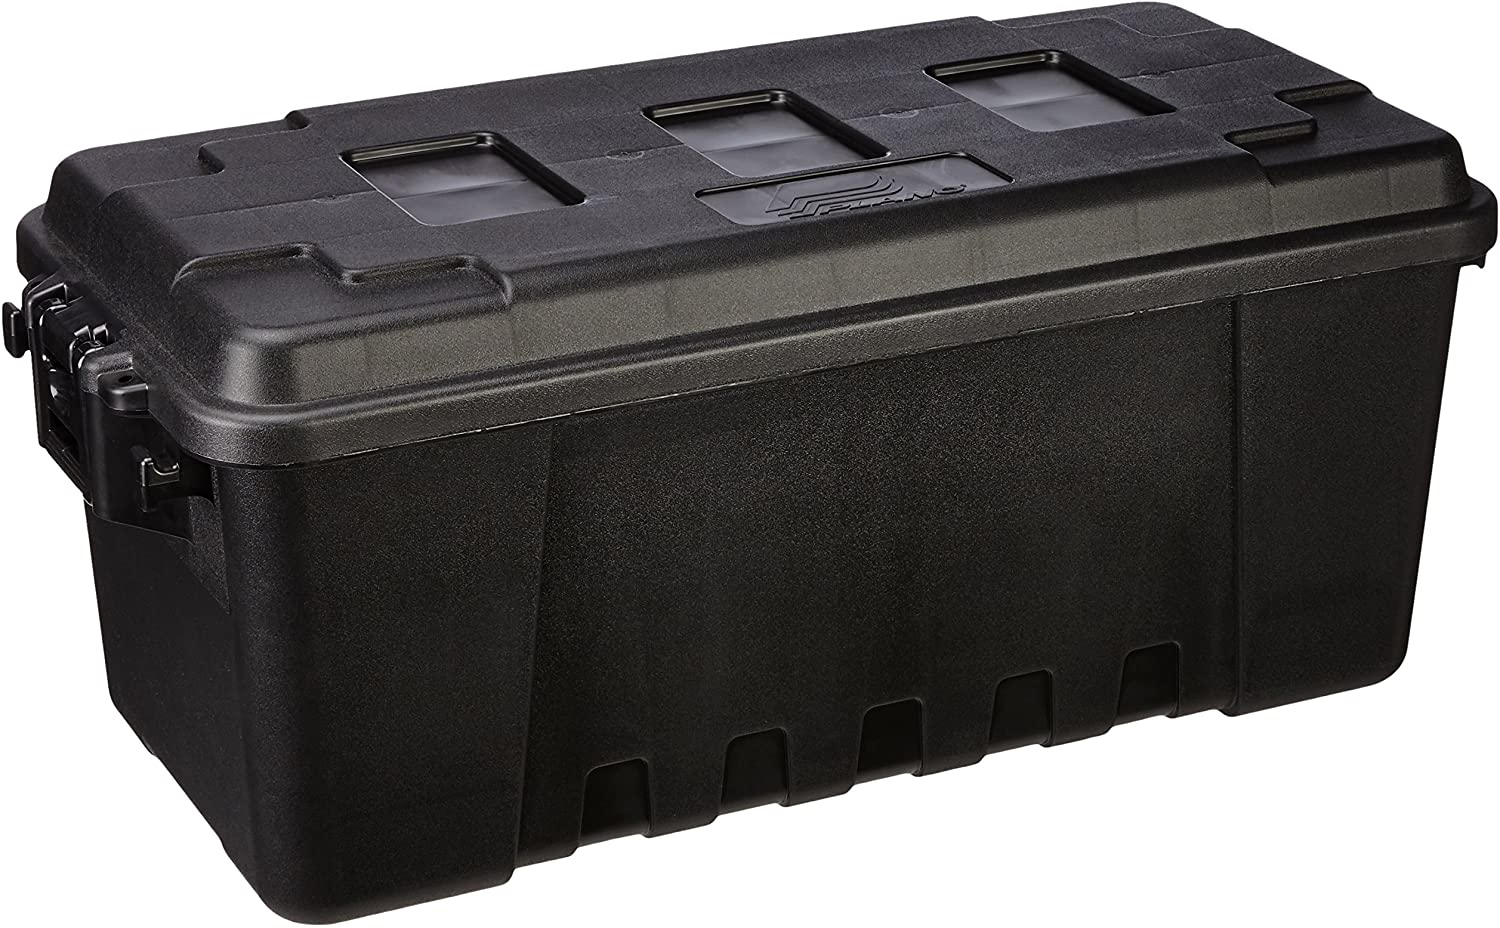 Plano 68-Quart Storage Trunk & Bin